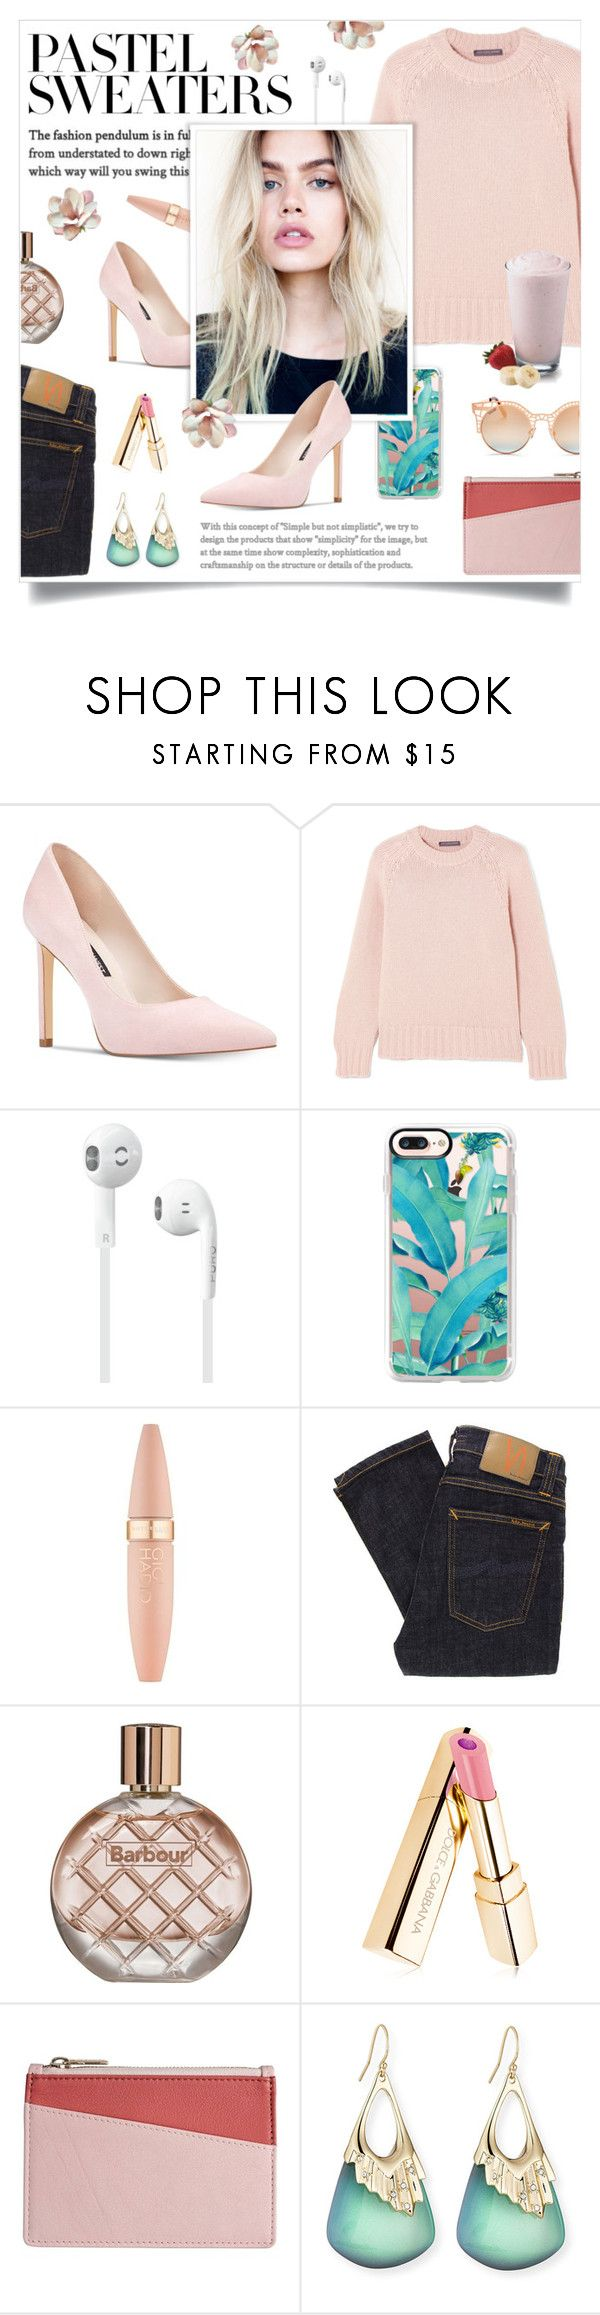 """""""Pastel Sweater"""" by linmari ❤ liked on Polyvore featuring Nine West, Alexander McQueen, Casetify, Maybelline, Nudie Jeans Co., Barbour, STOW, Alexis Bittar, Quay and pastelsweaters"""